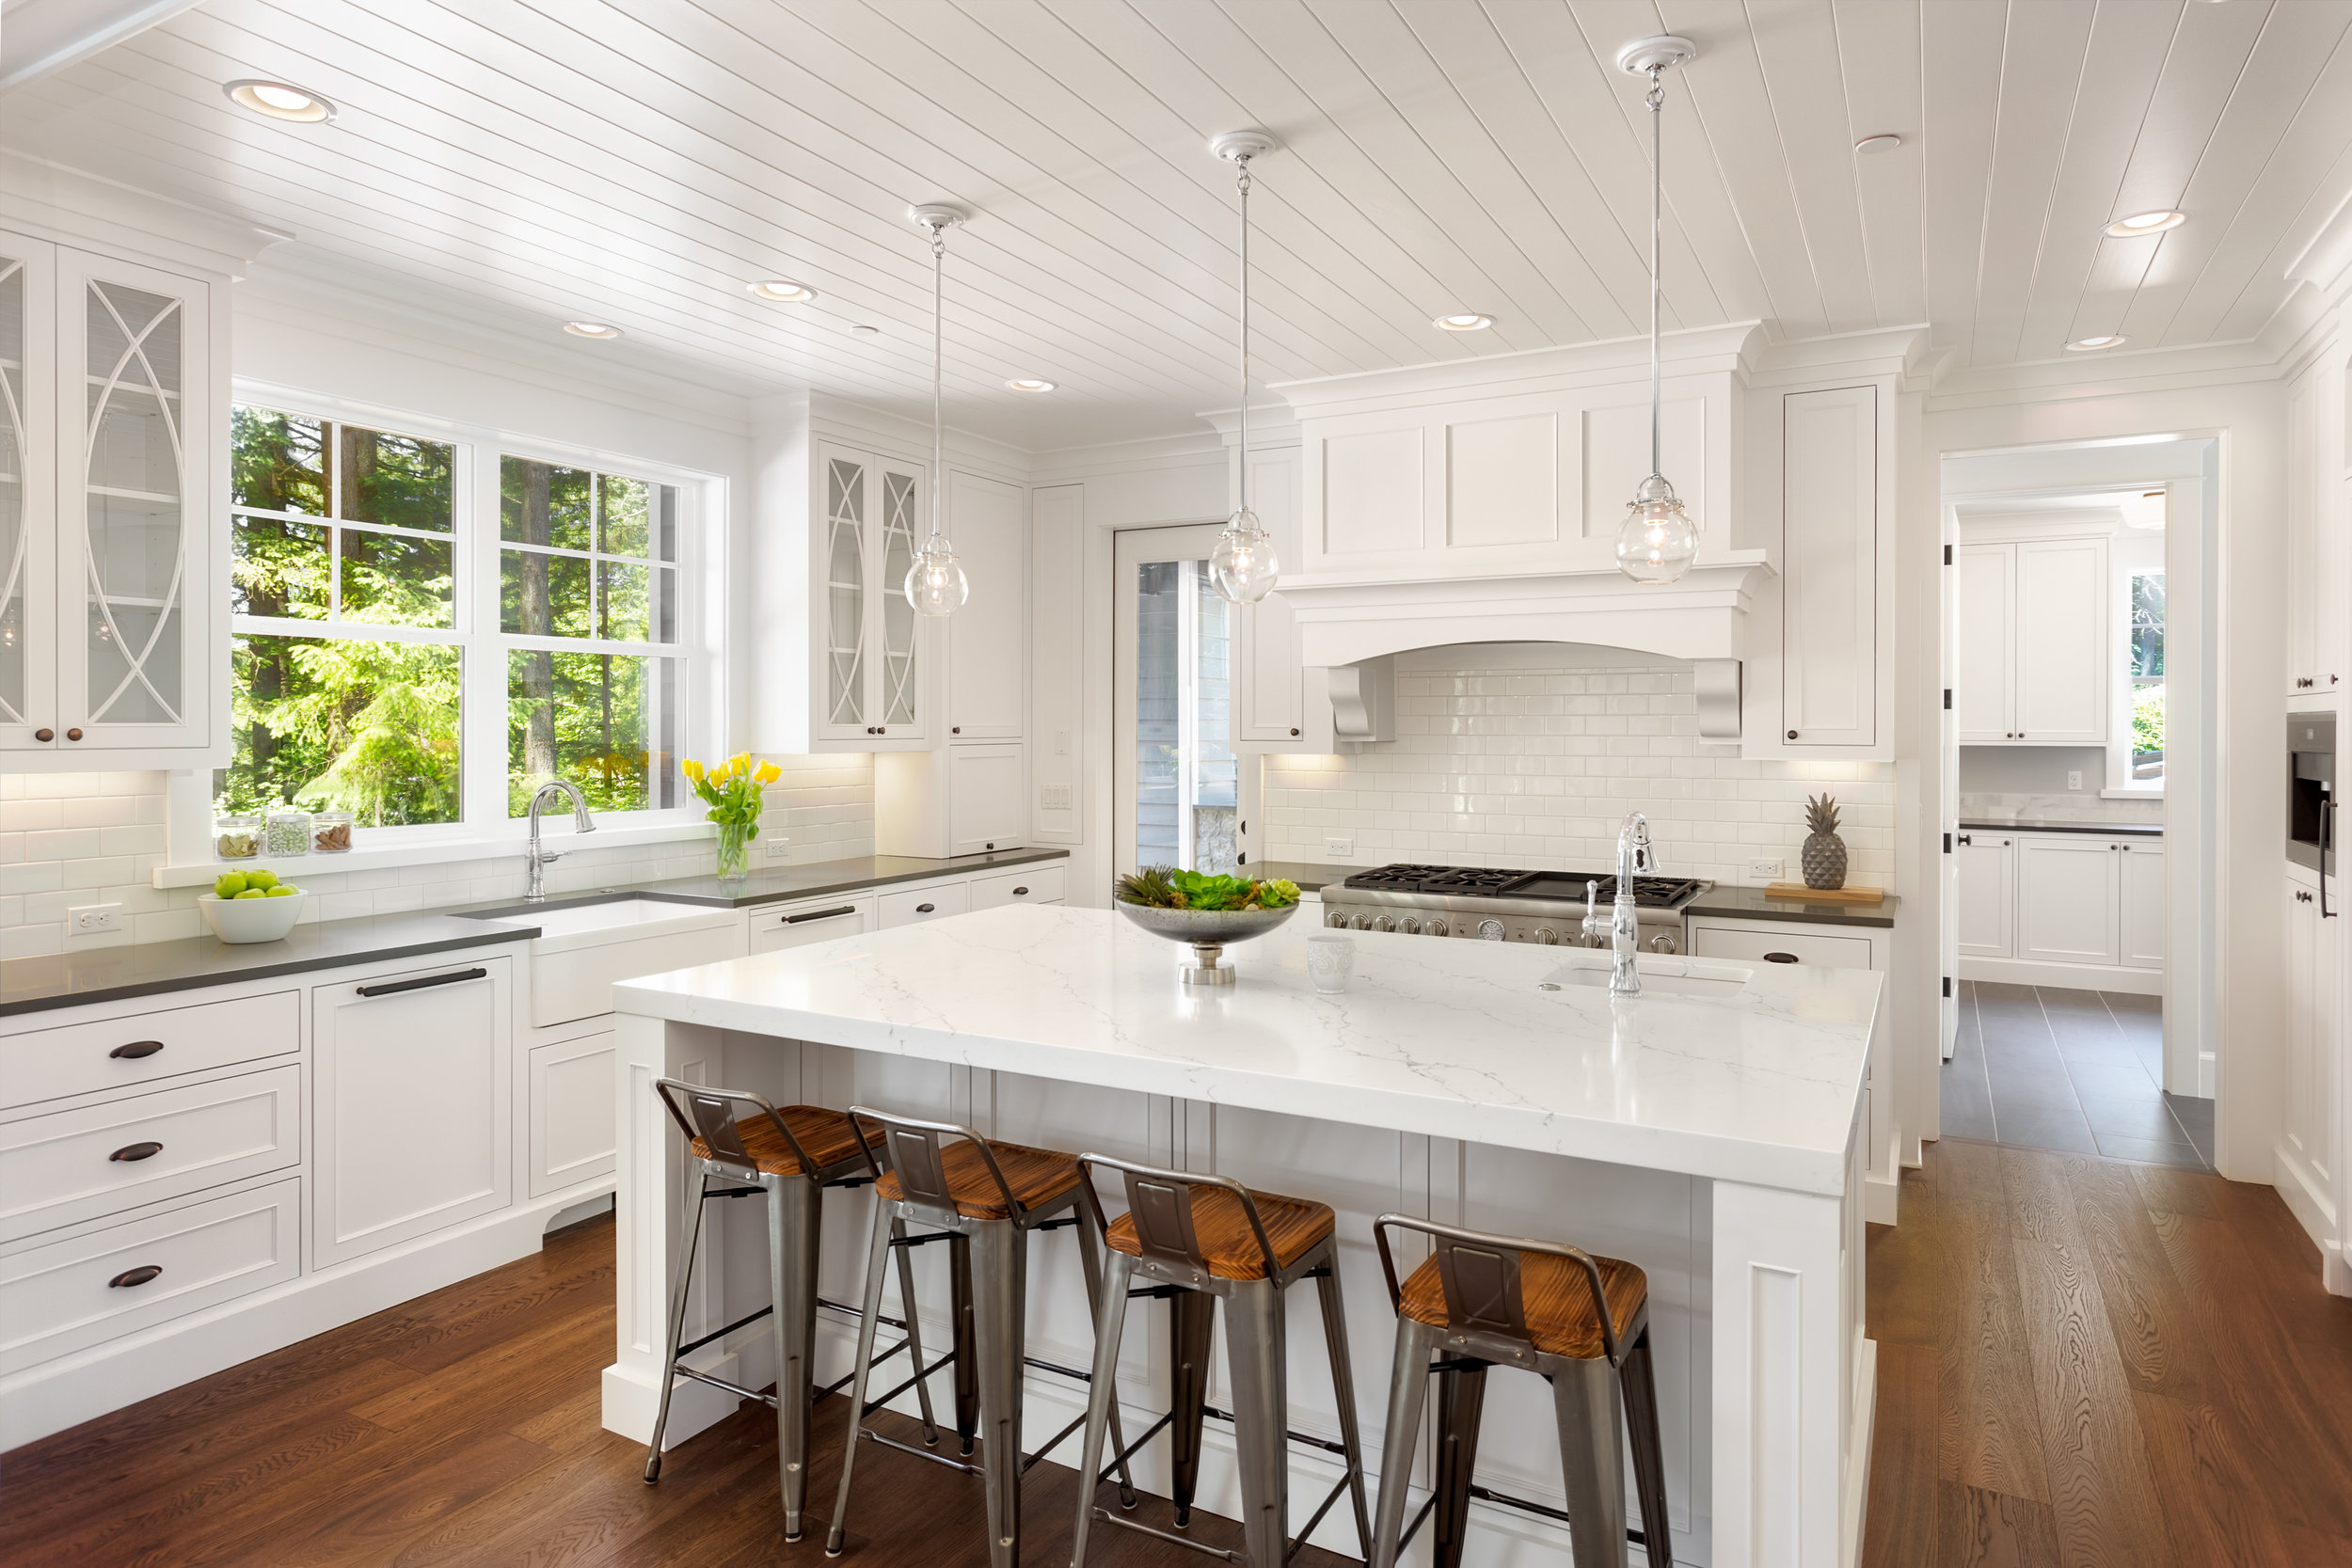 Nothing like New - We can efficiently handle all of your construction needs. Our company has expertise in kitchen and bathroom remodeling, residential additions and commercial constructions. Learn more ➝